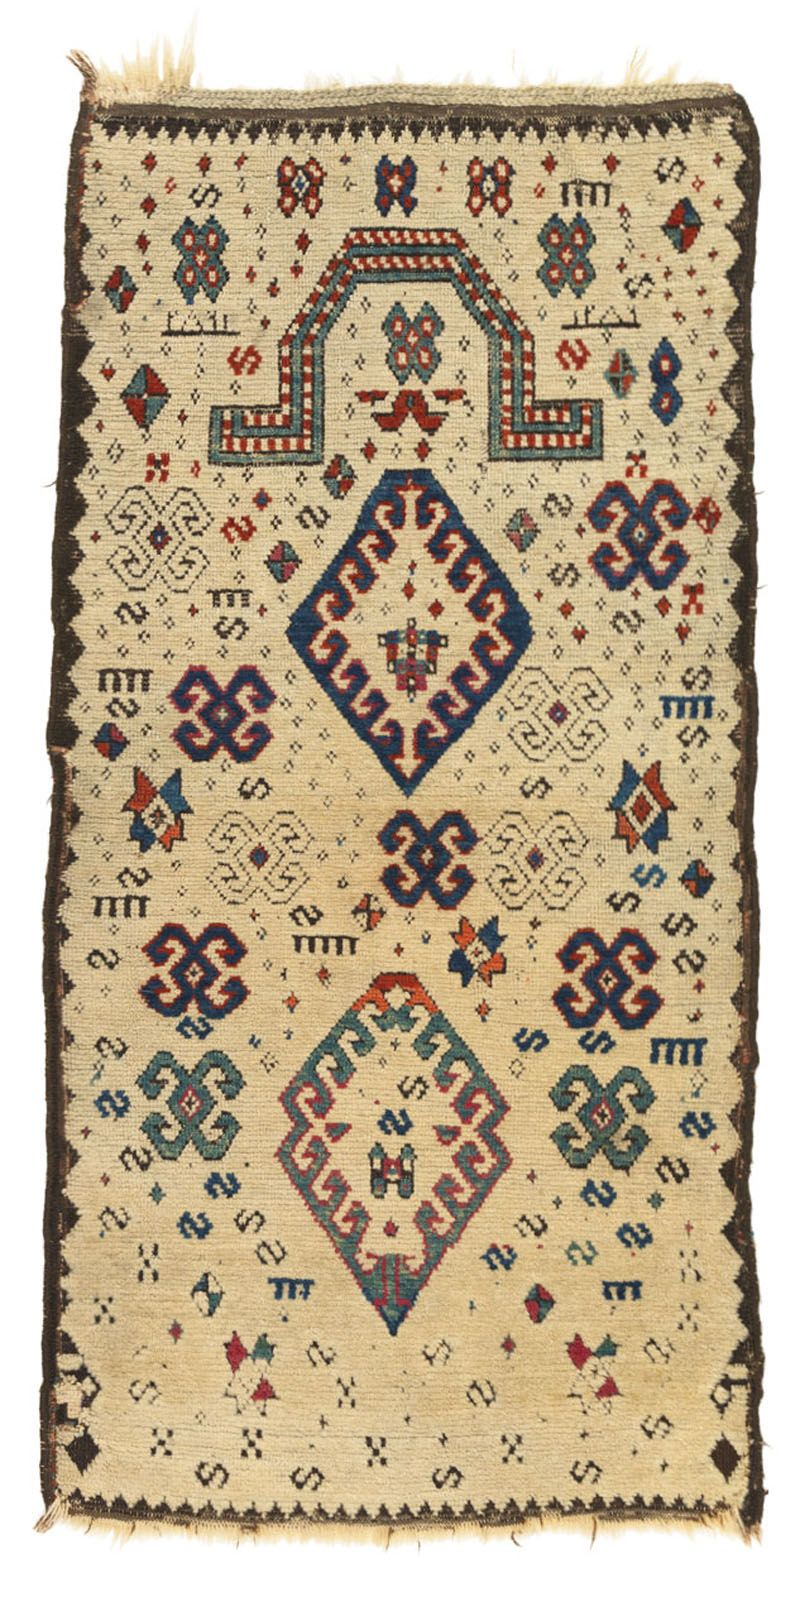 Zakatala Prayer Rug Zakatala Prayer Rug 19th C (3rd Q) Caucasus